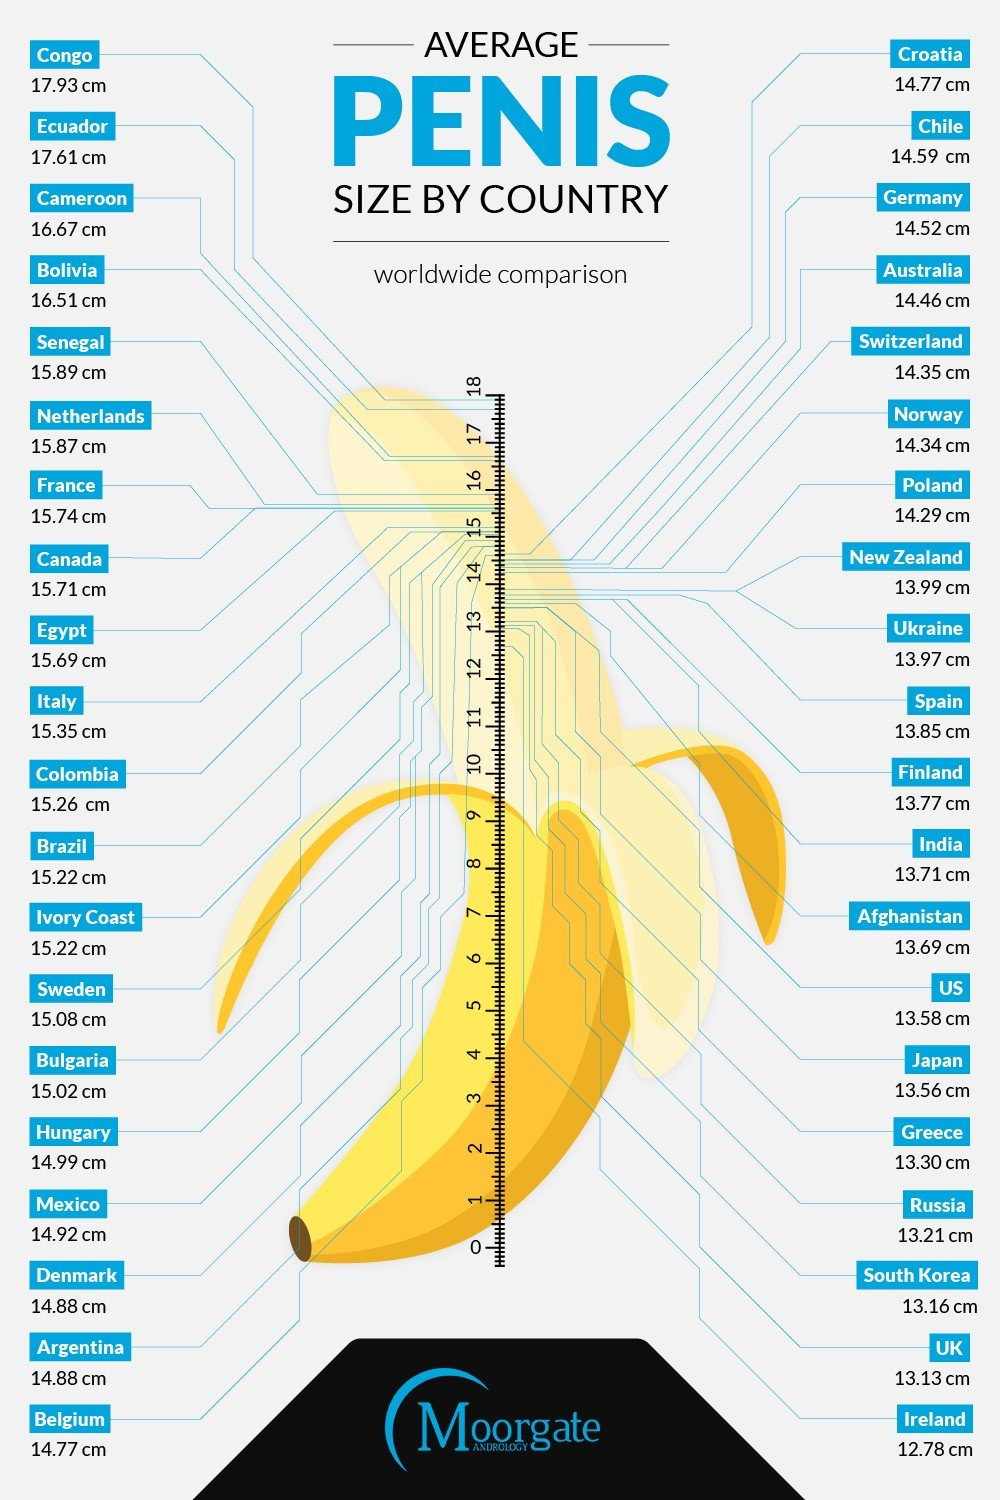 Average penis size by country (2)